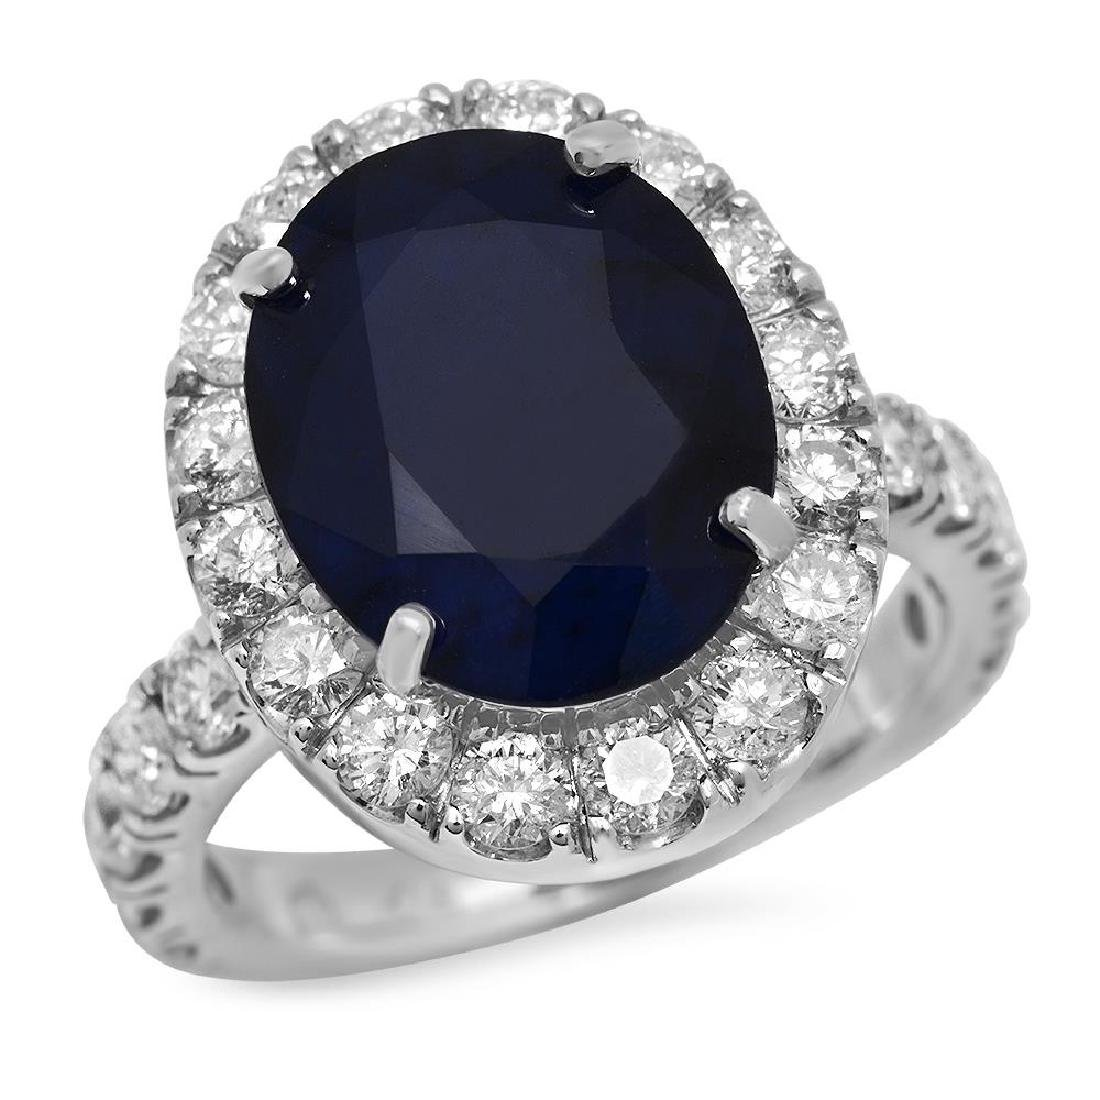 14K Gold 8.00ct Sapphire 2.00ct Diamond Ring